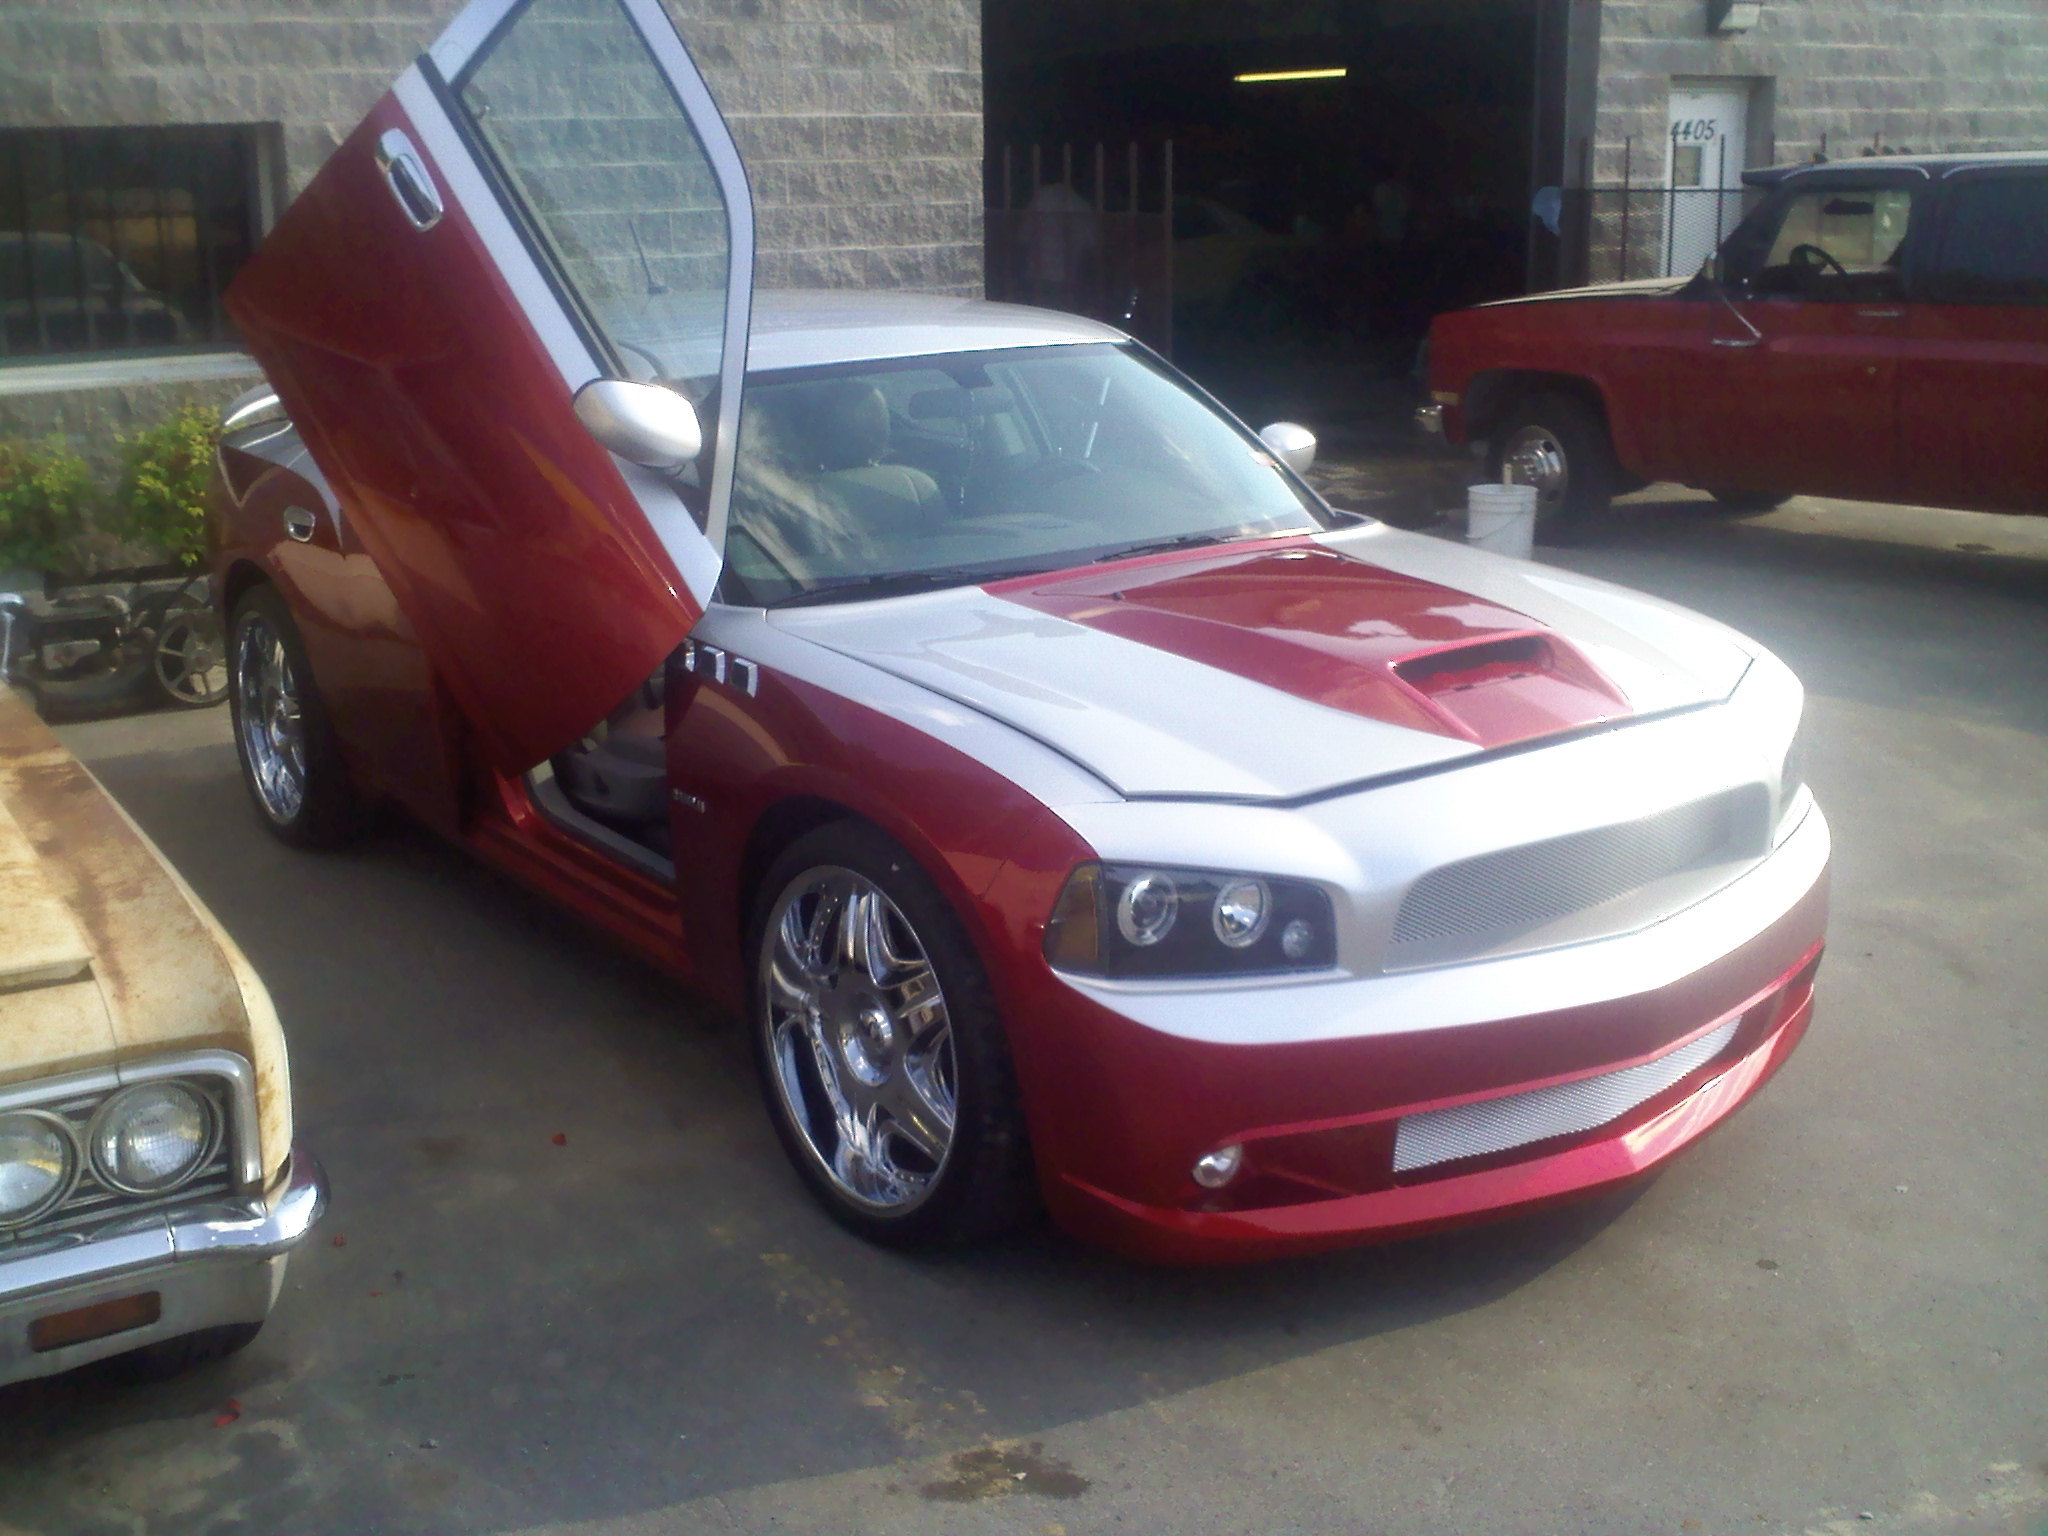 Acura Of Fayetteville >> hemiboyz's 2008 Dodge Charger in fayetteville, NC